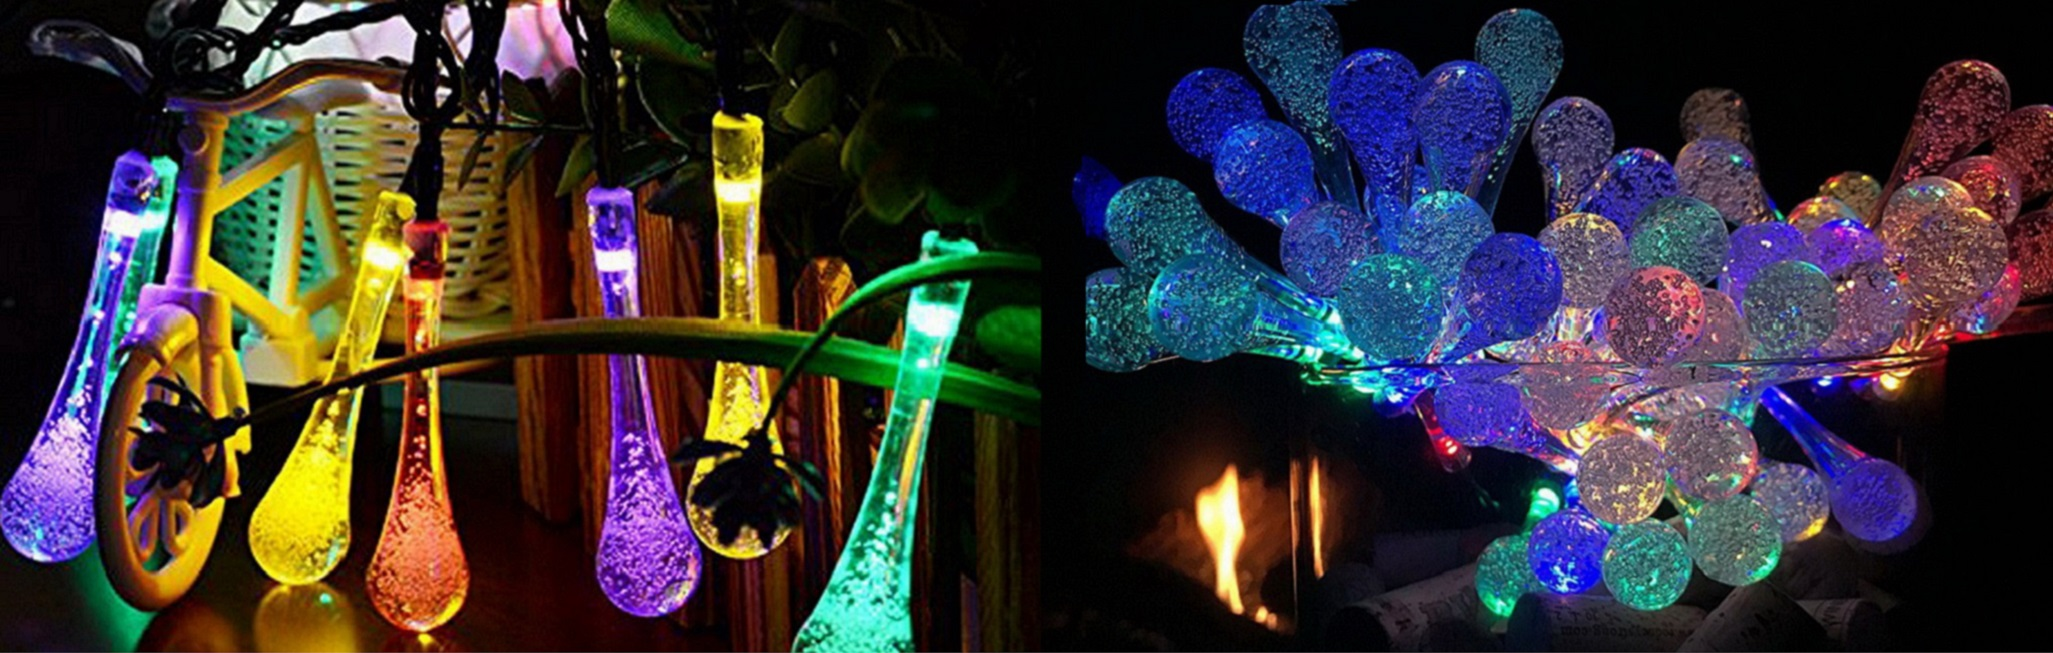 LED Outdoor Water Drop Solar String Lights